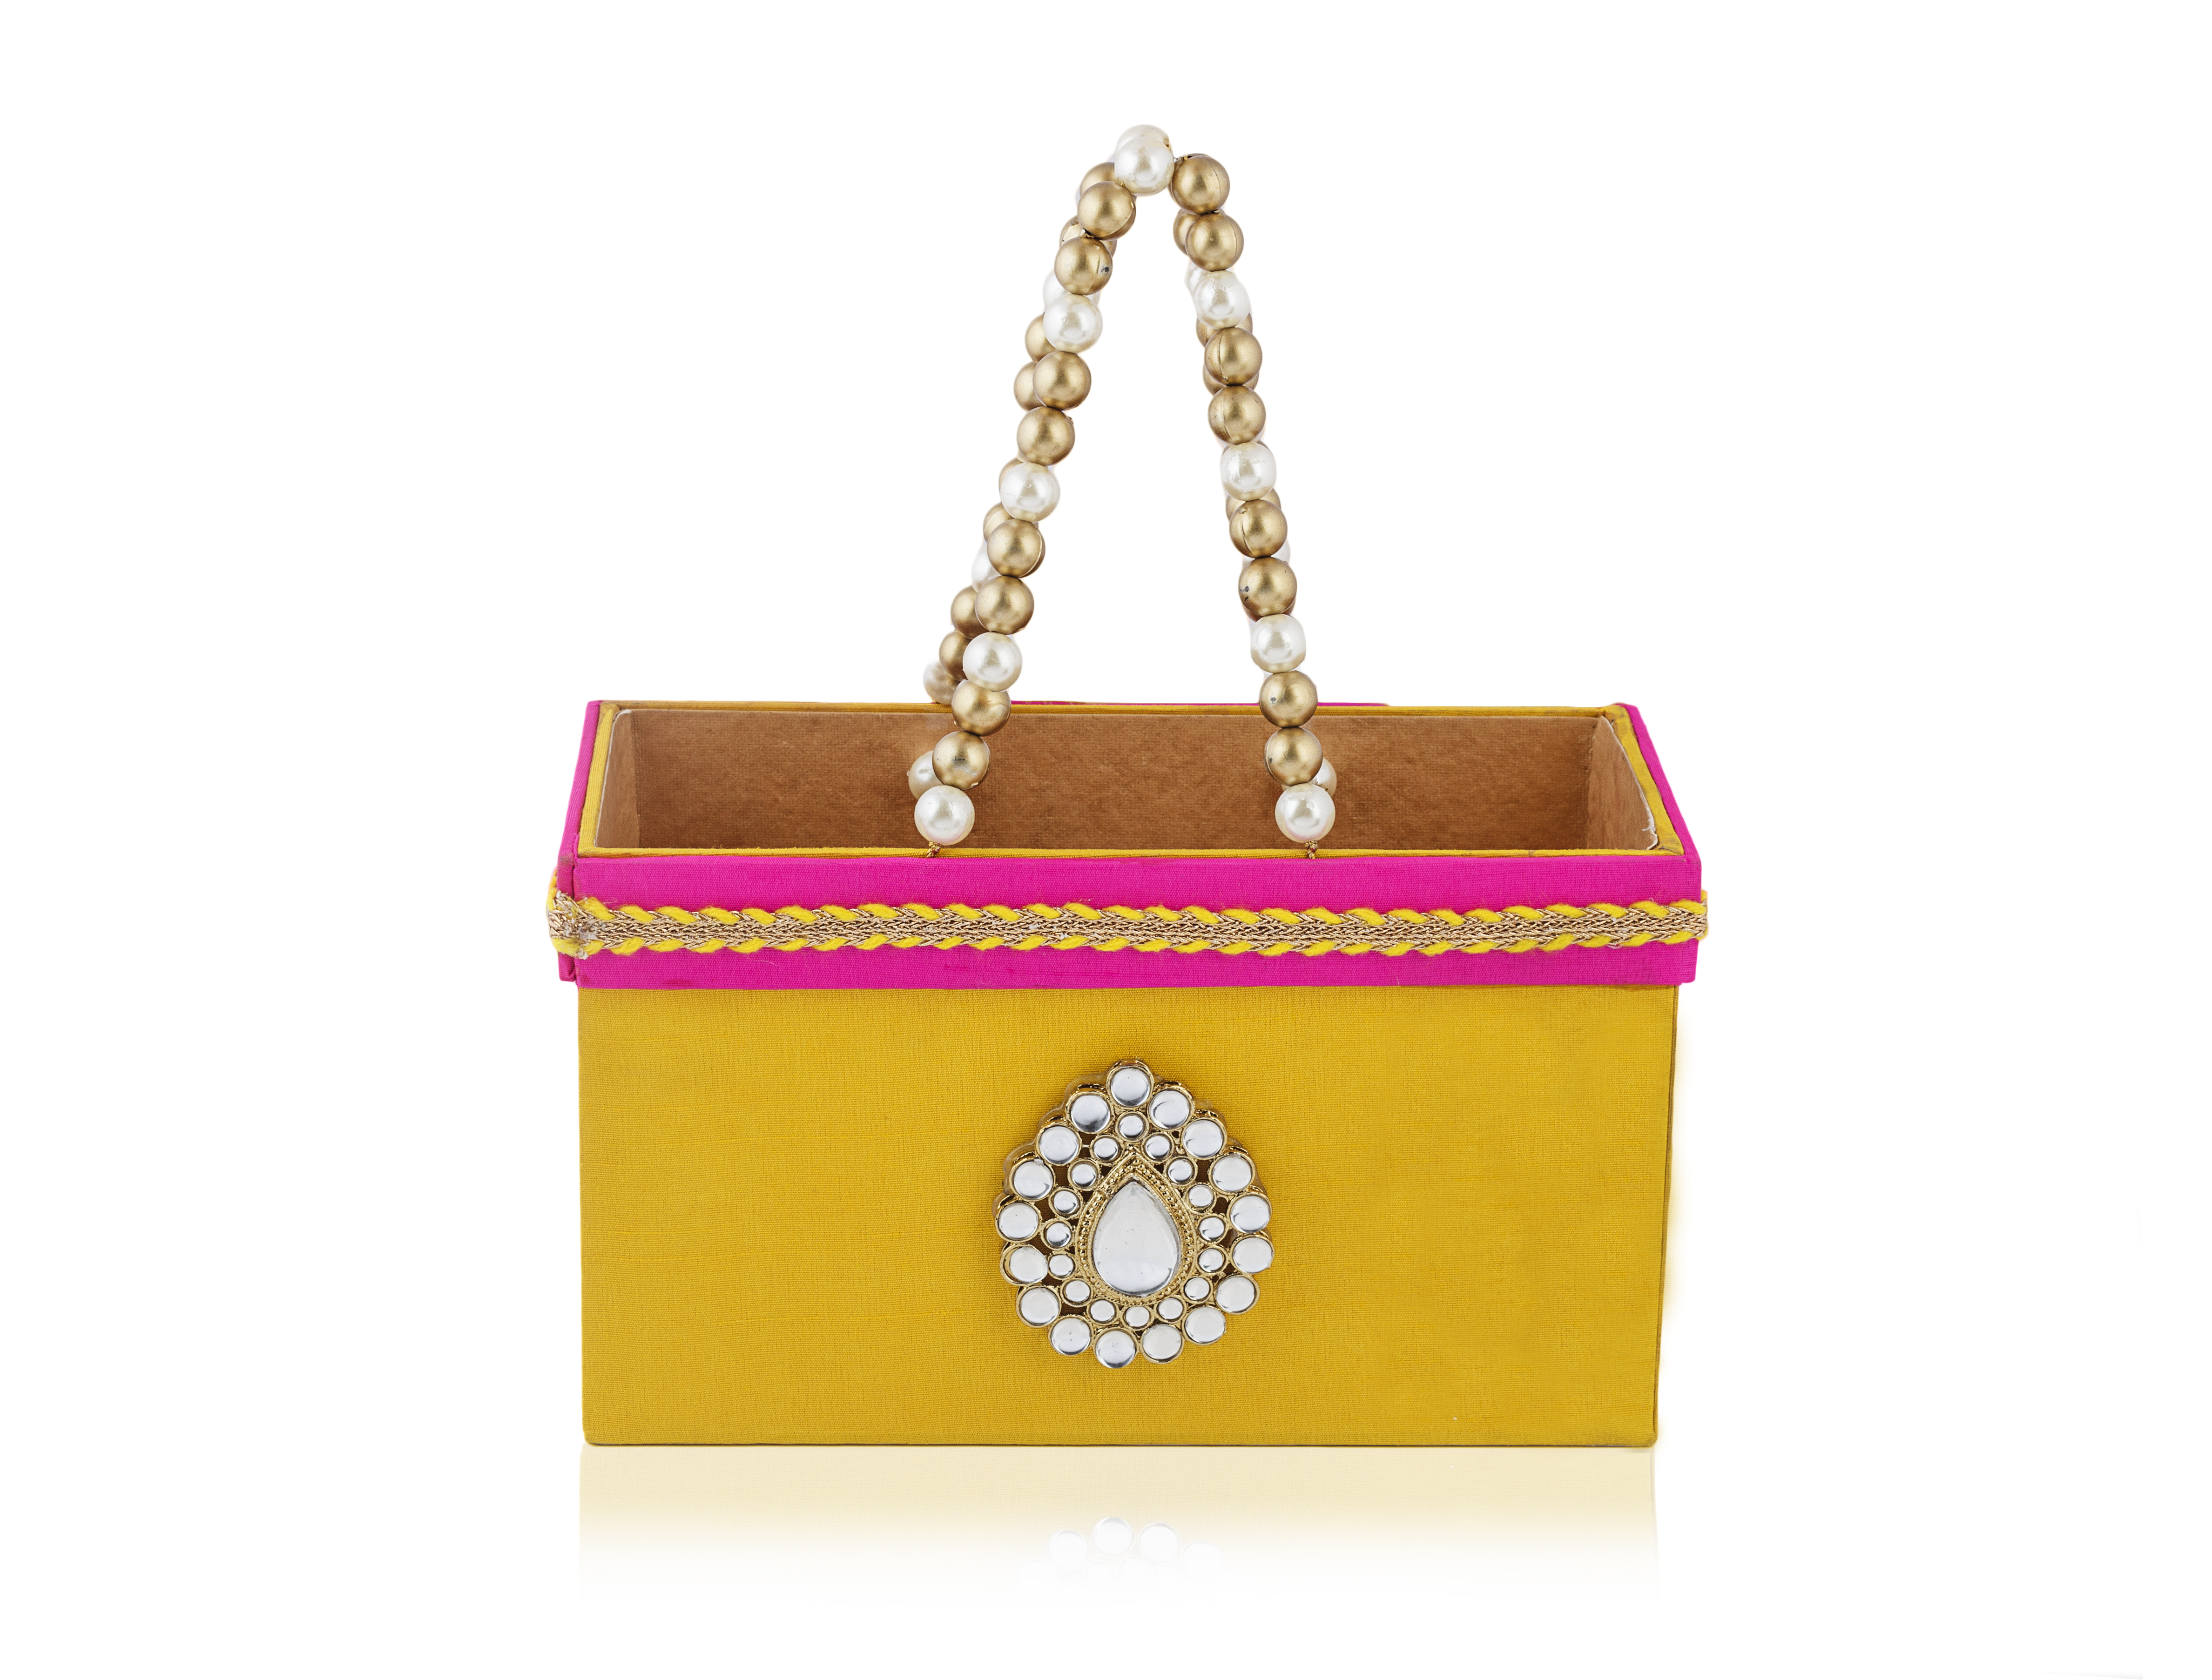 Items For Wedding Gift Bag : Buy Rajwada Gift-sweet Basket Bag (small ) online Gift Items ...